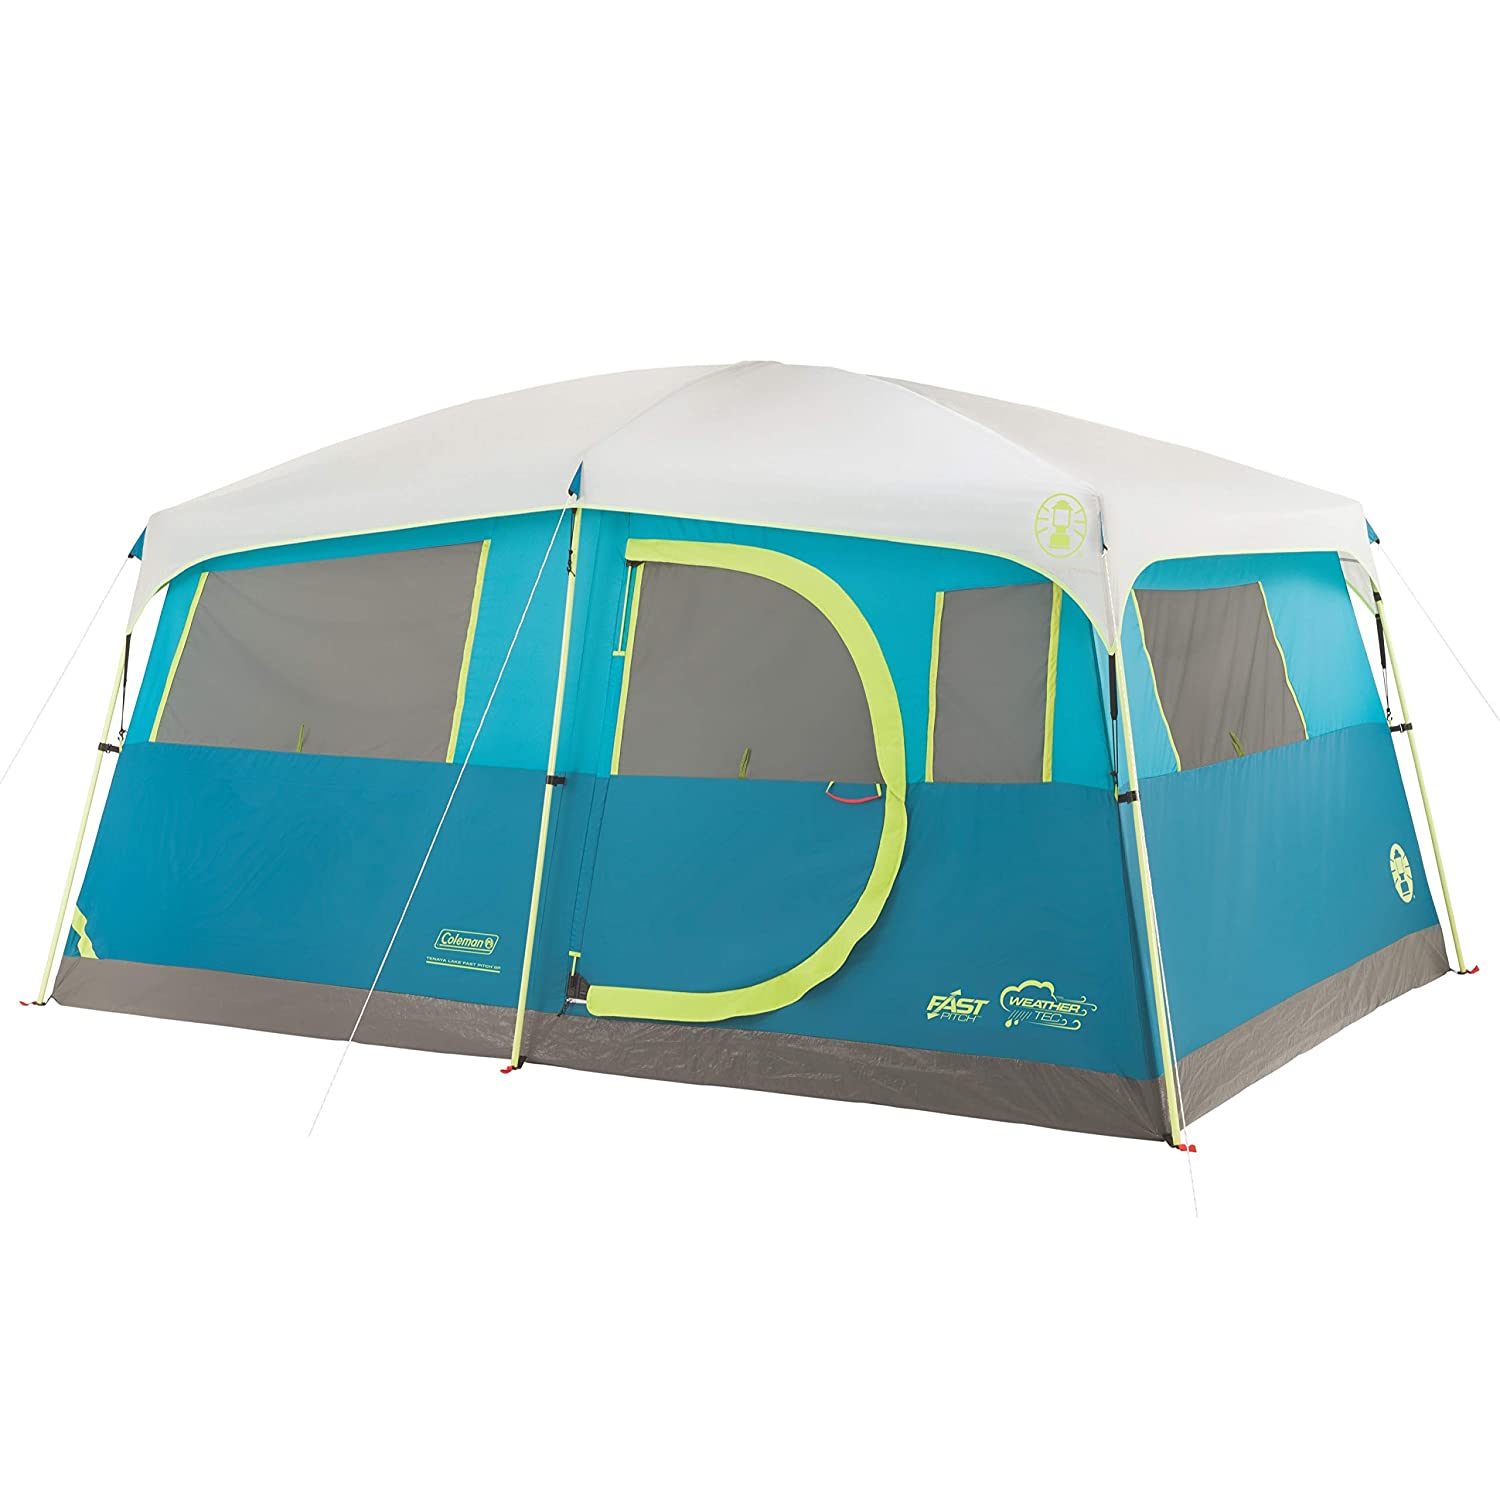 Coleman 8-Person Camping Tent with Built-in Closet, Best Instant Tents